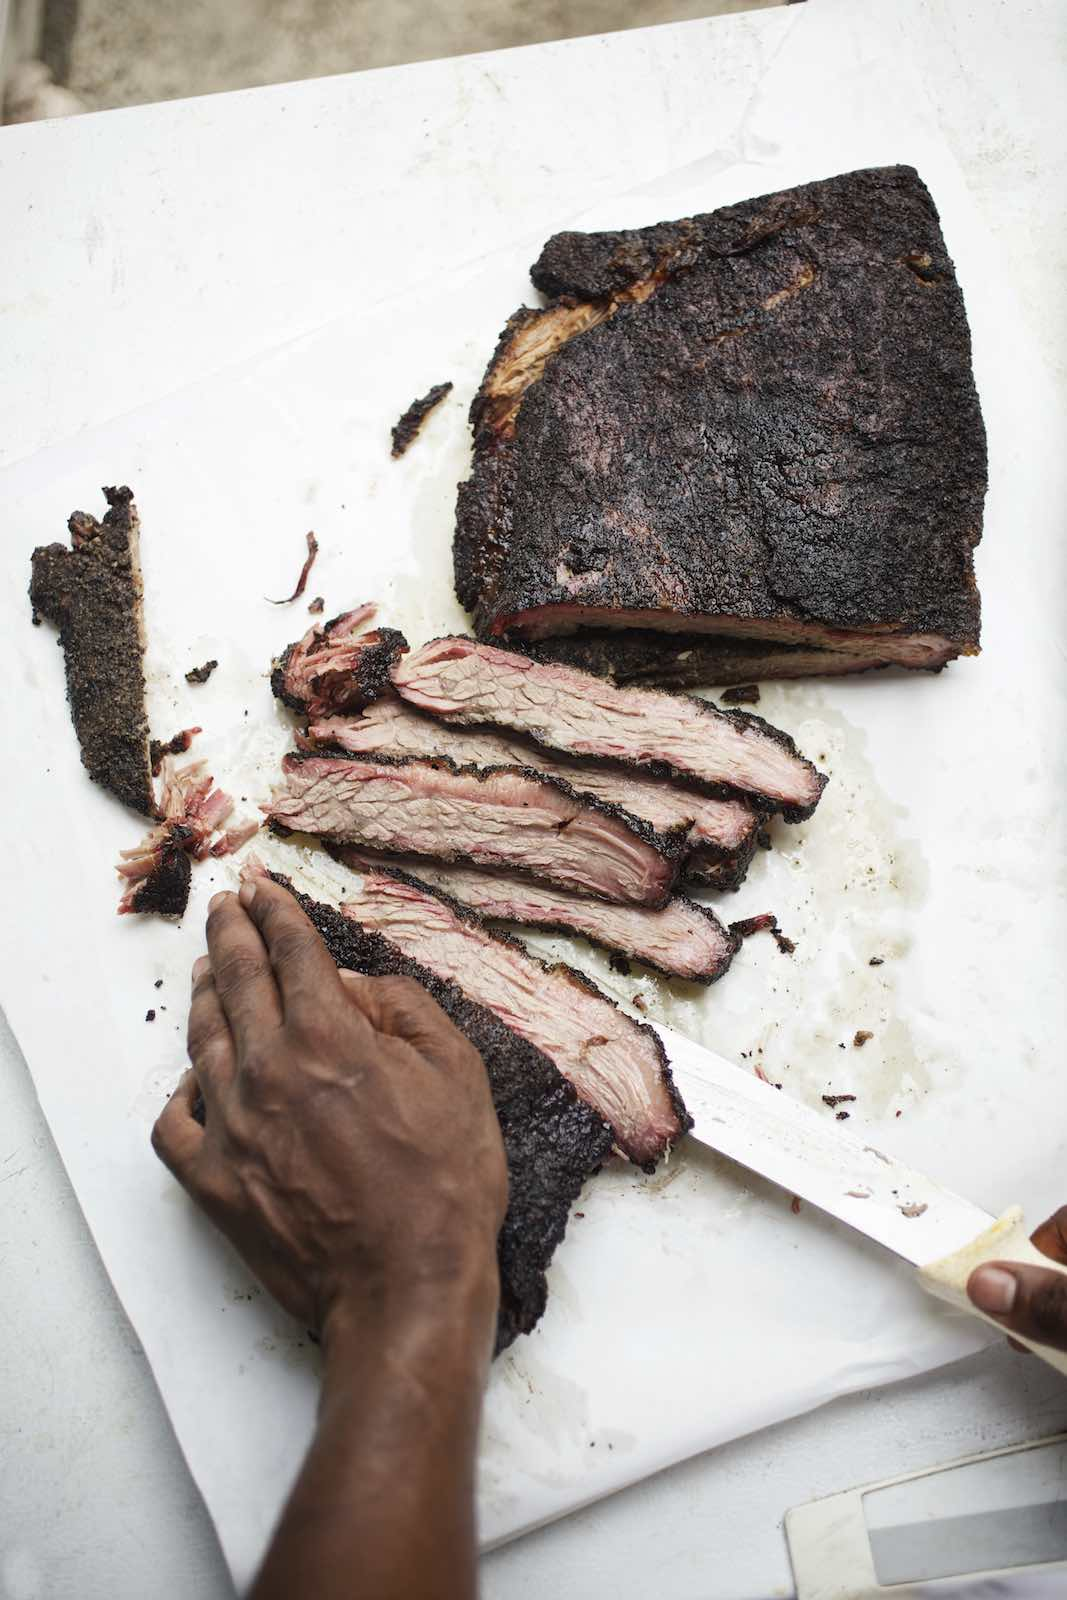 Jody Horton Photography - Smoked brisket being sliced on white parchment.